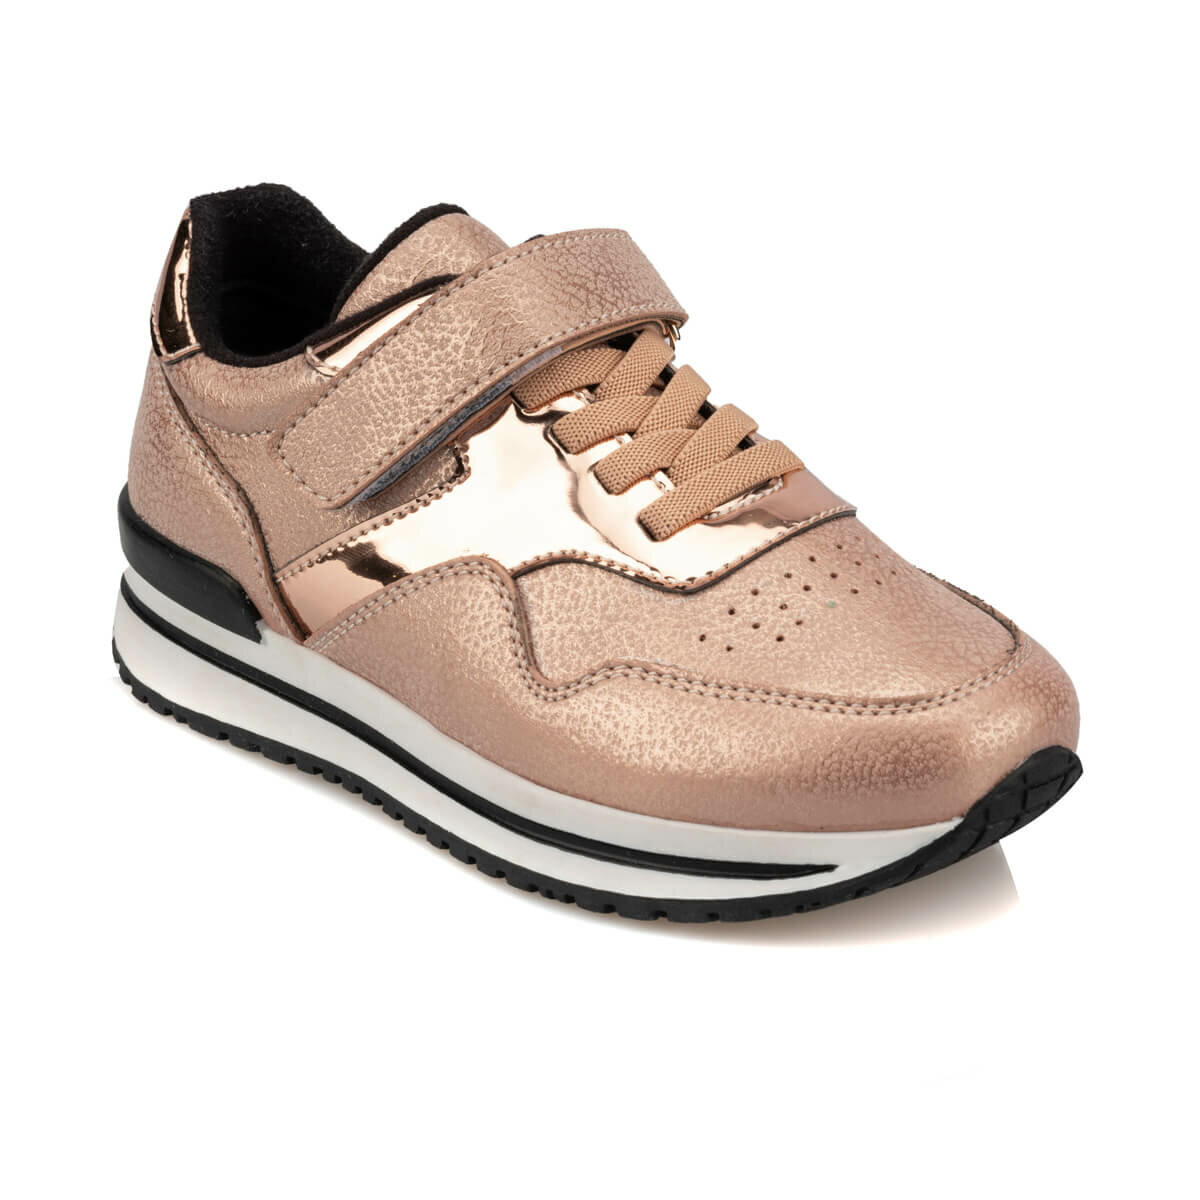 FLO 92.511781.P Sand Color Female Child Sports Shoes Polaris